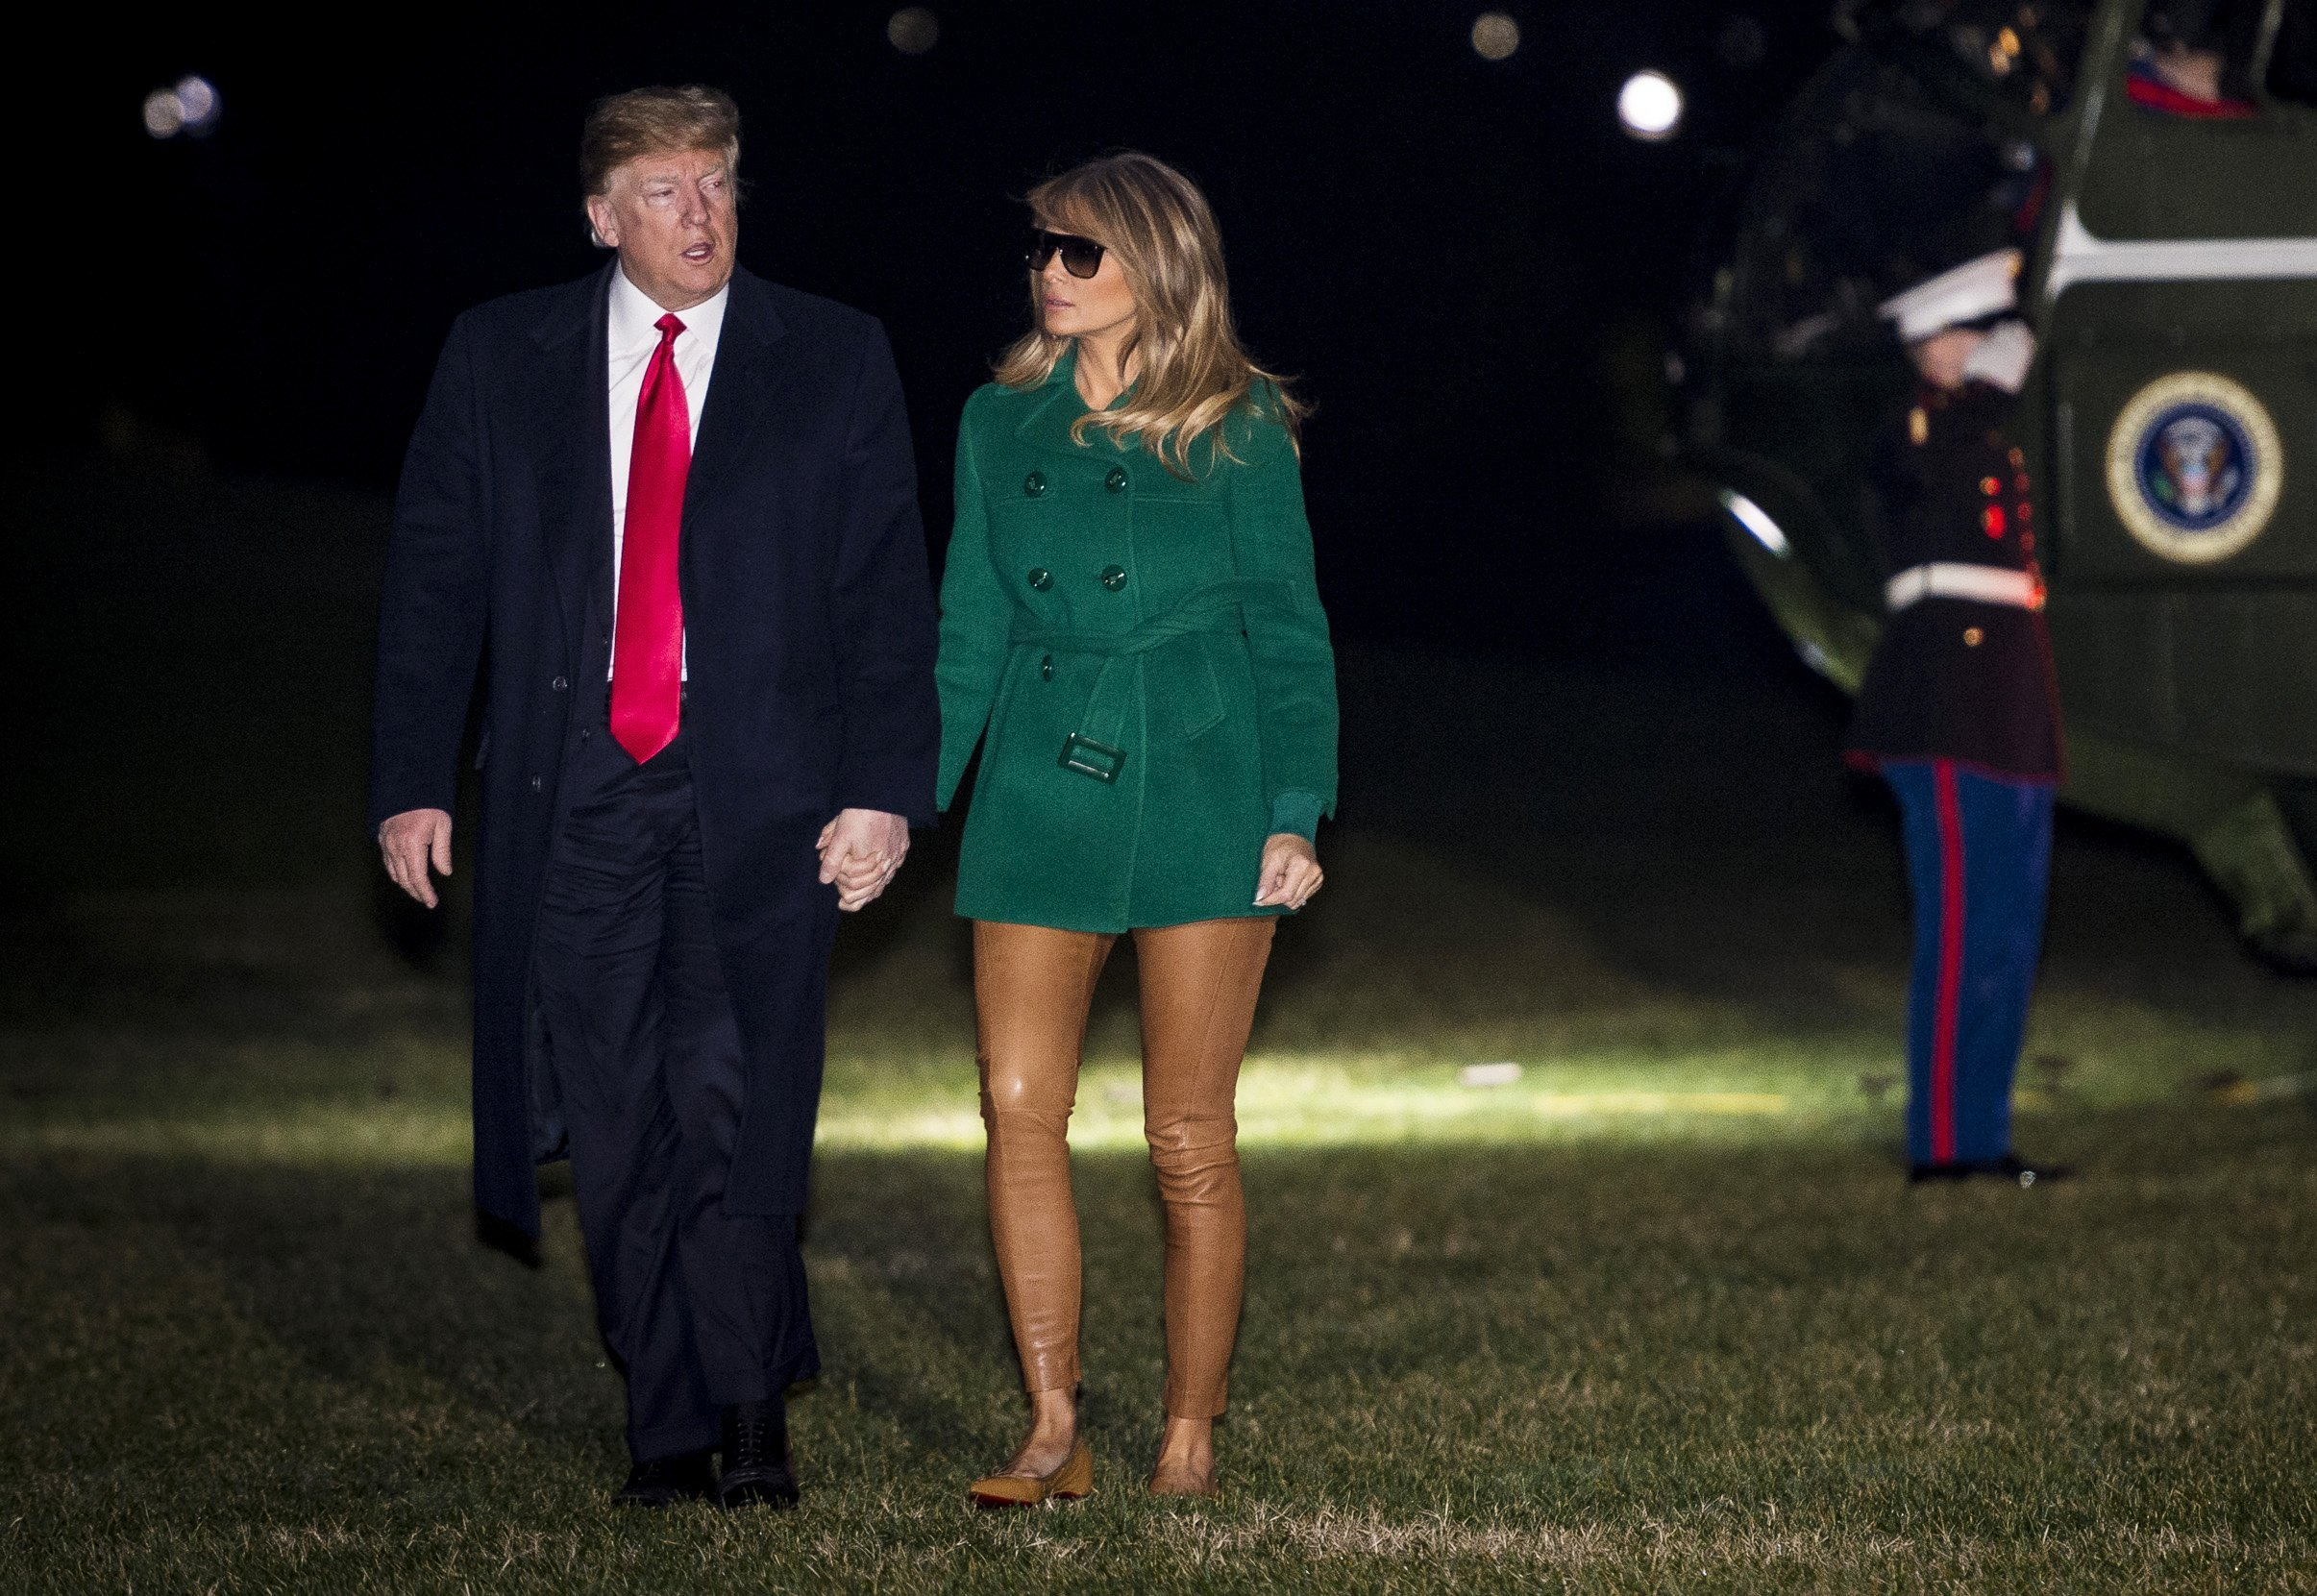 President Donald Trump and First Lady Melania Trump make their way across the South Lawn of the White House after returning on Marine One from their surprise trip to Al Asad Air Base in Iraq to visit troops, on December 27, 2018 | Photo: GettyImages